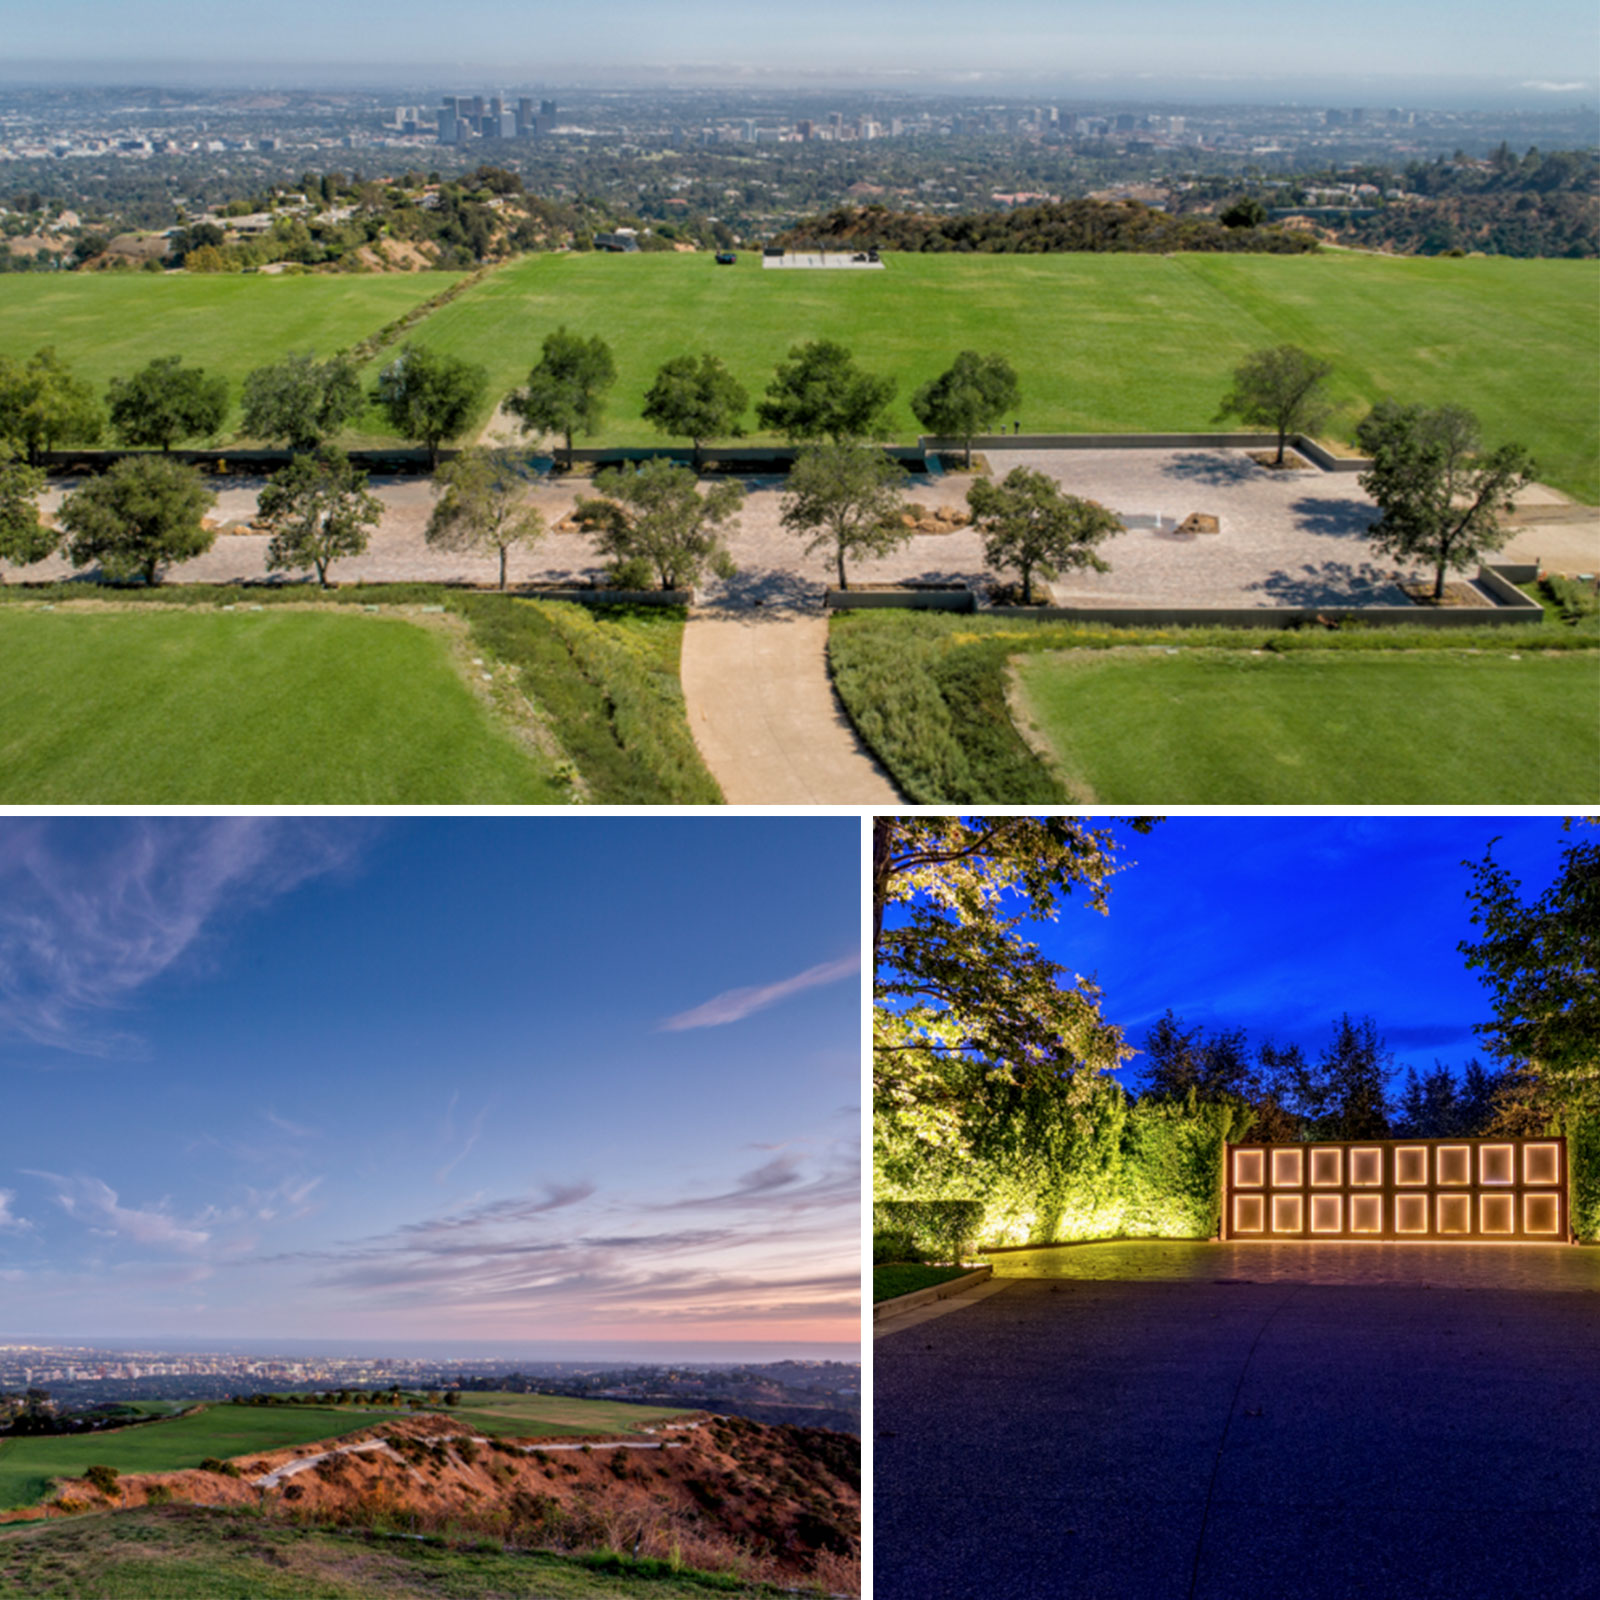 The likely buyer for this property is an individual high-roller who wants to build a suburban-sized compound overlooking the entire city.